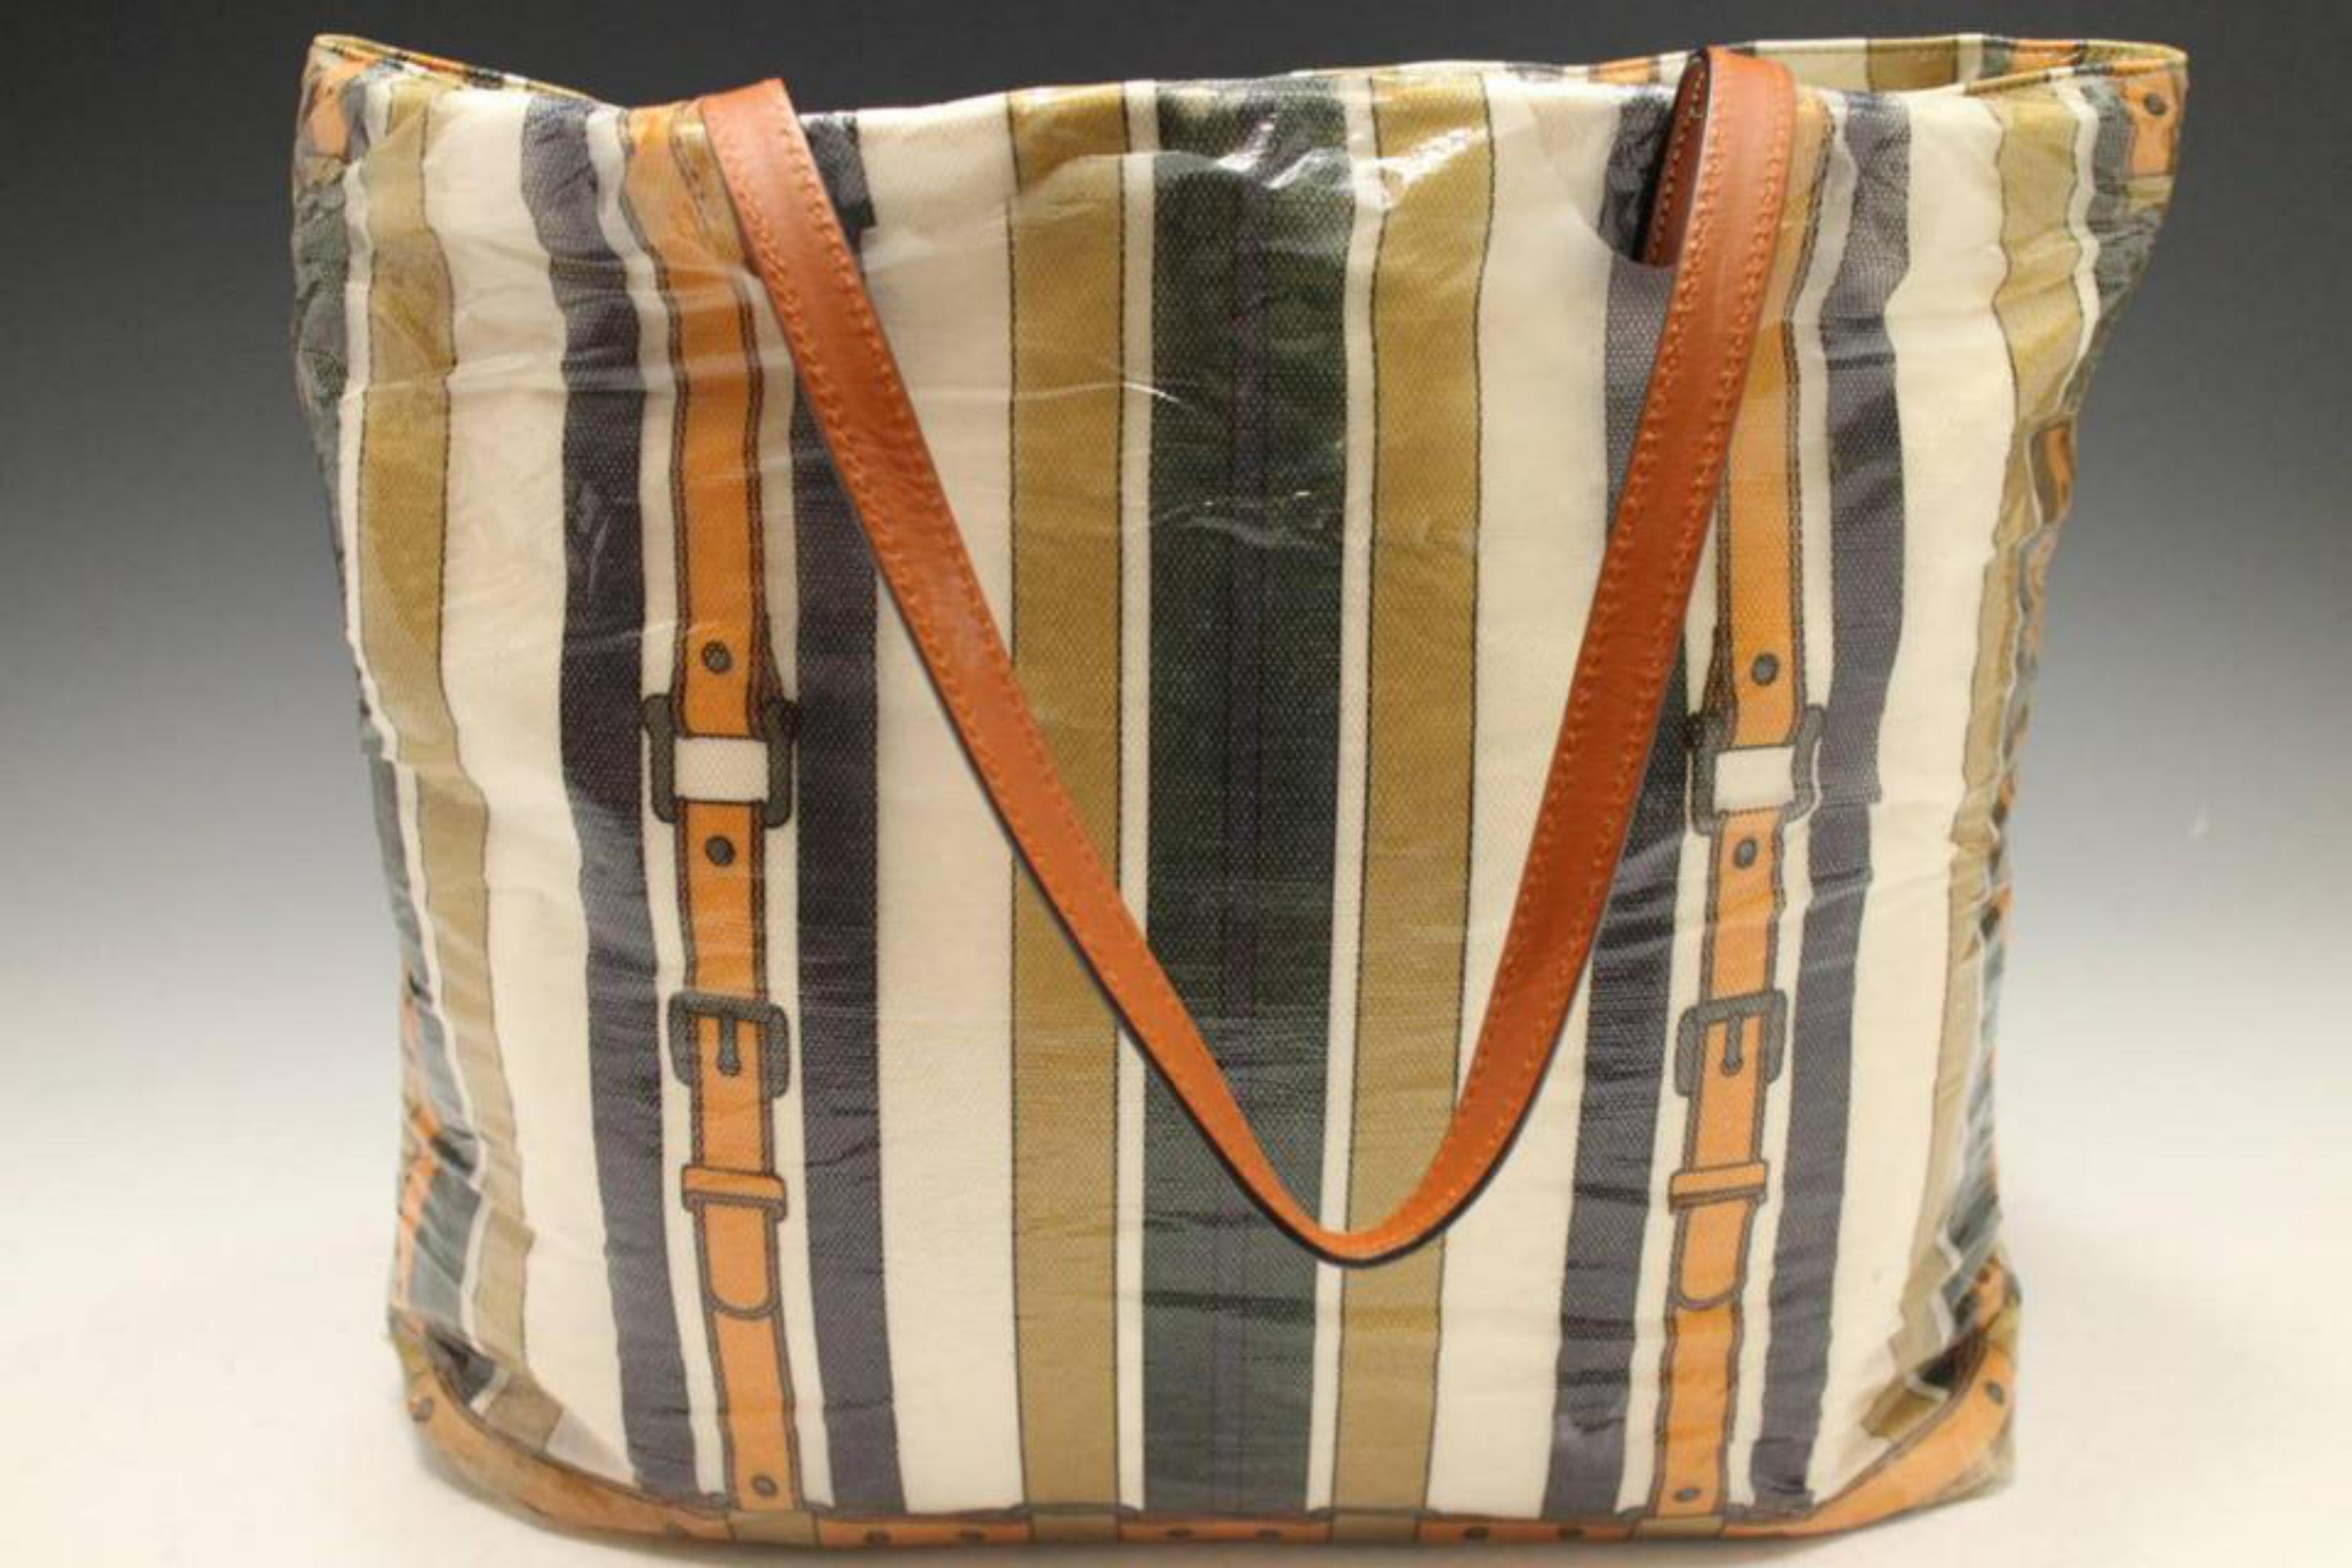 cfea4f27931 Gucci Extra Large Striped Belt Motif Travel 230985 Beige Coated Canvas Tote  For Sale at 1stdibs